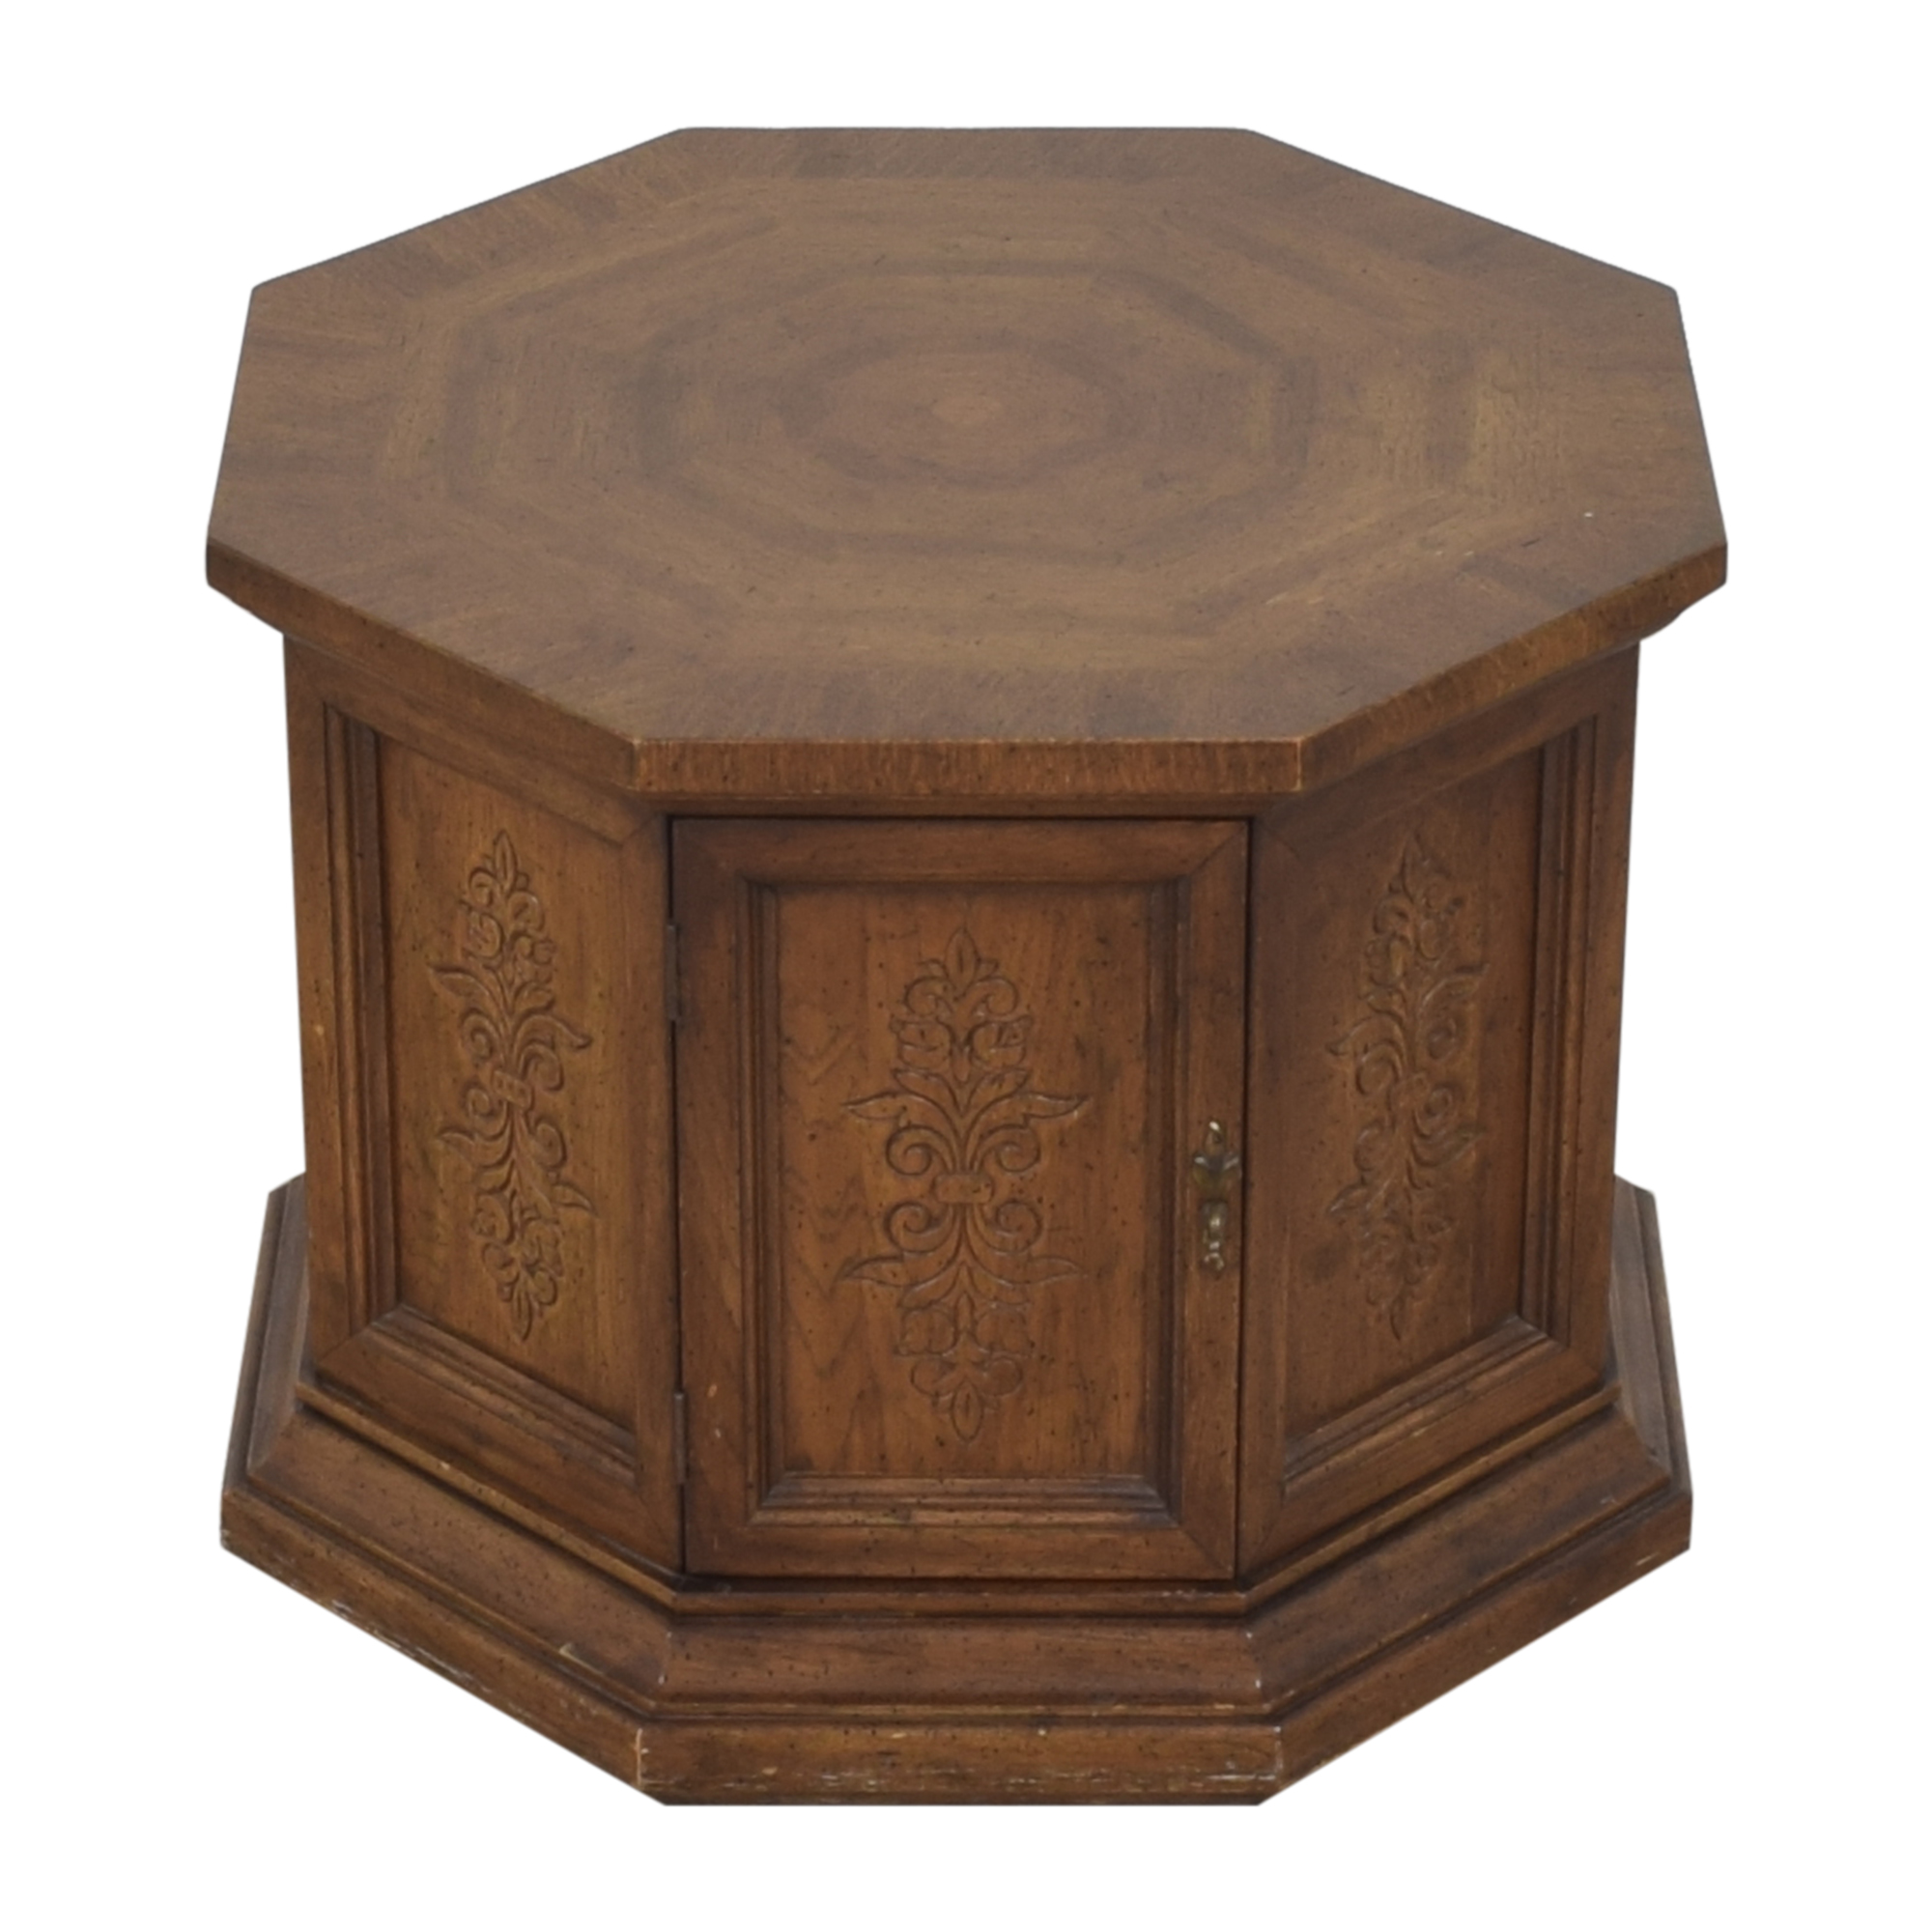 American of Martinsville American of Martinsville Octagonal End Table coupon